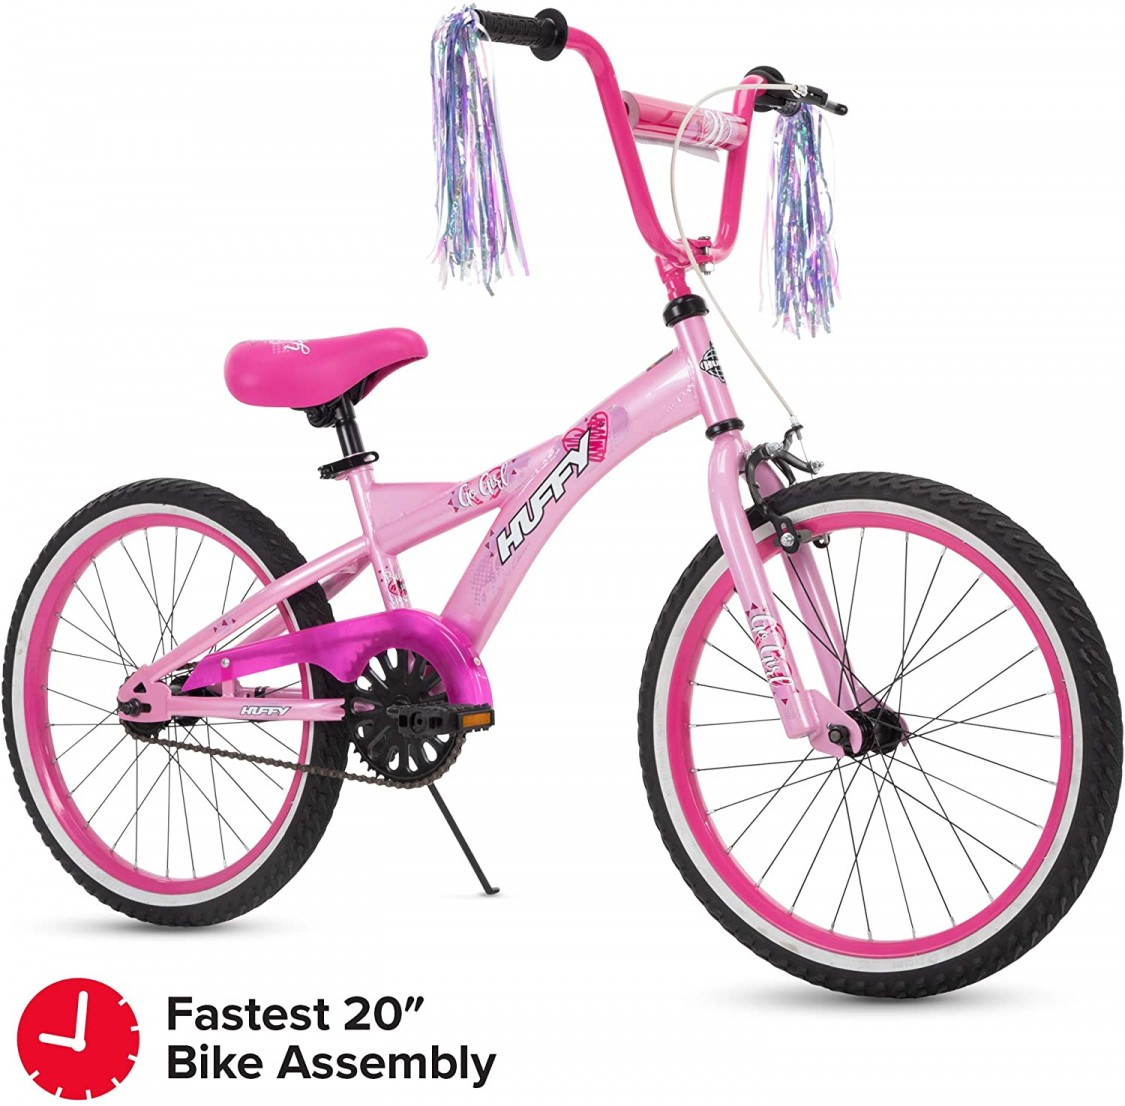 Top 5 Best Bicycle for teenage girl